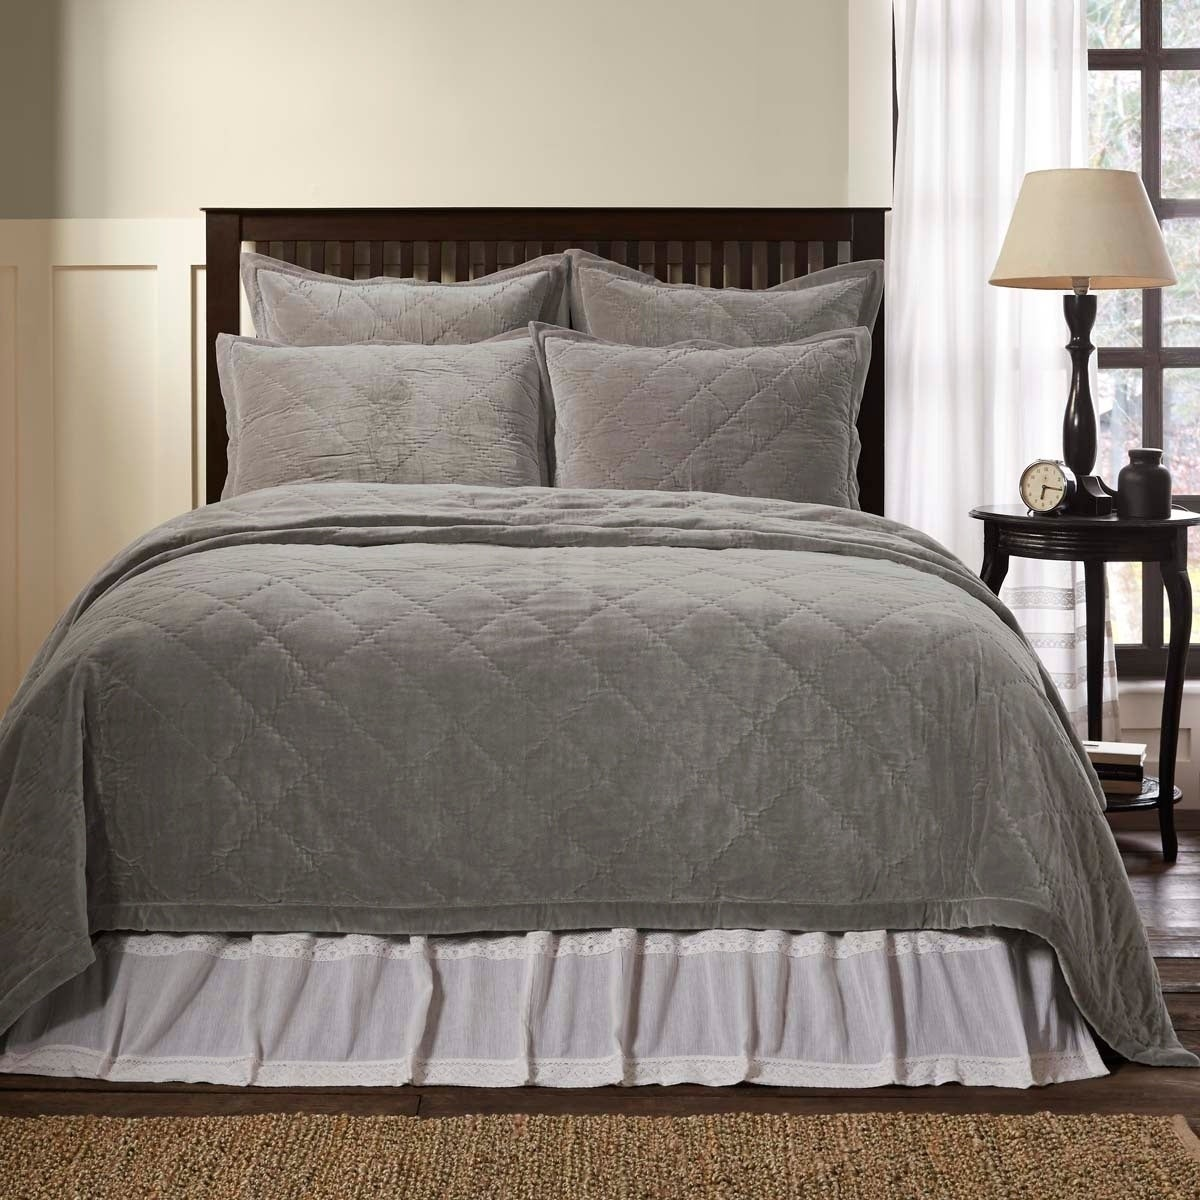 Lydia Grey Quilt Taupe Queen Vhc Brands Farmhouse Bedding Quilts Home Kitchen